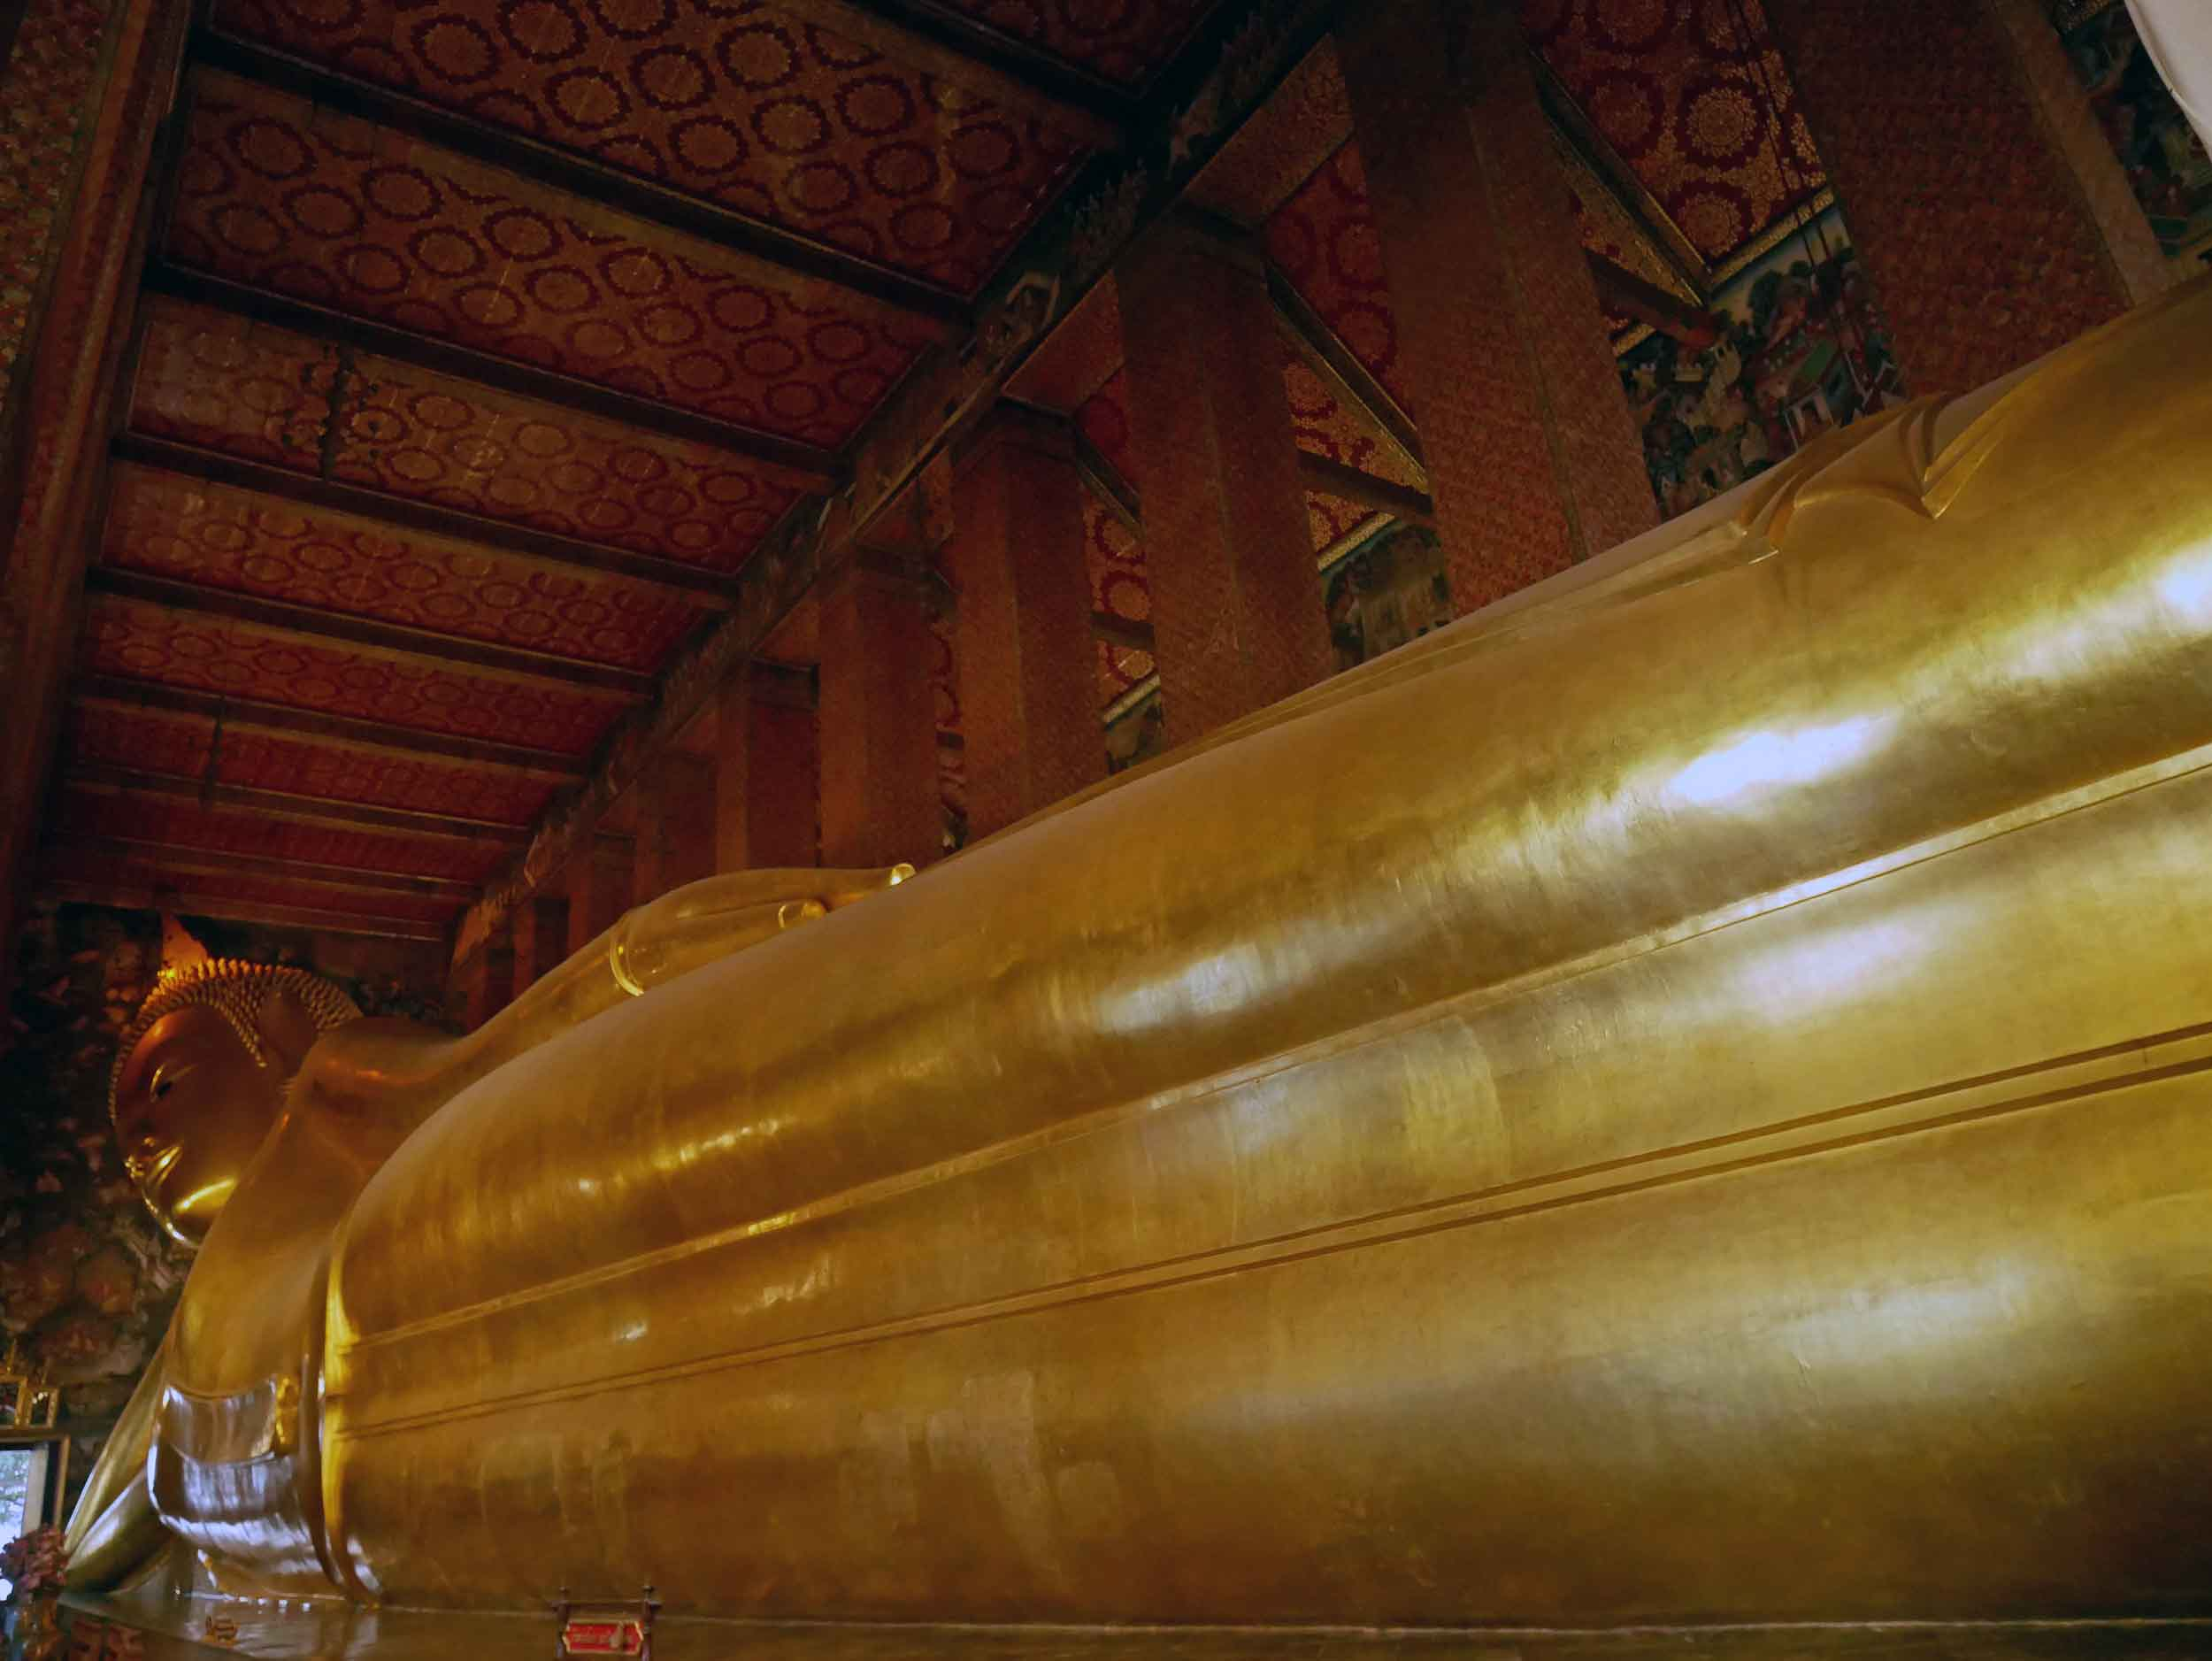 Featuring many sacred Buddha images, Wat Pho is best known for the 46 metre long reclining Buddha.